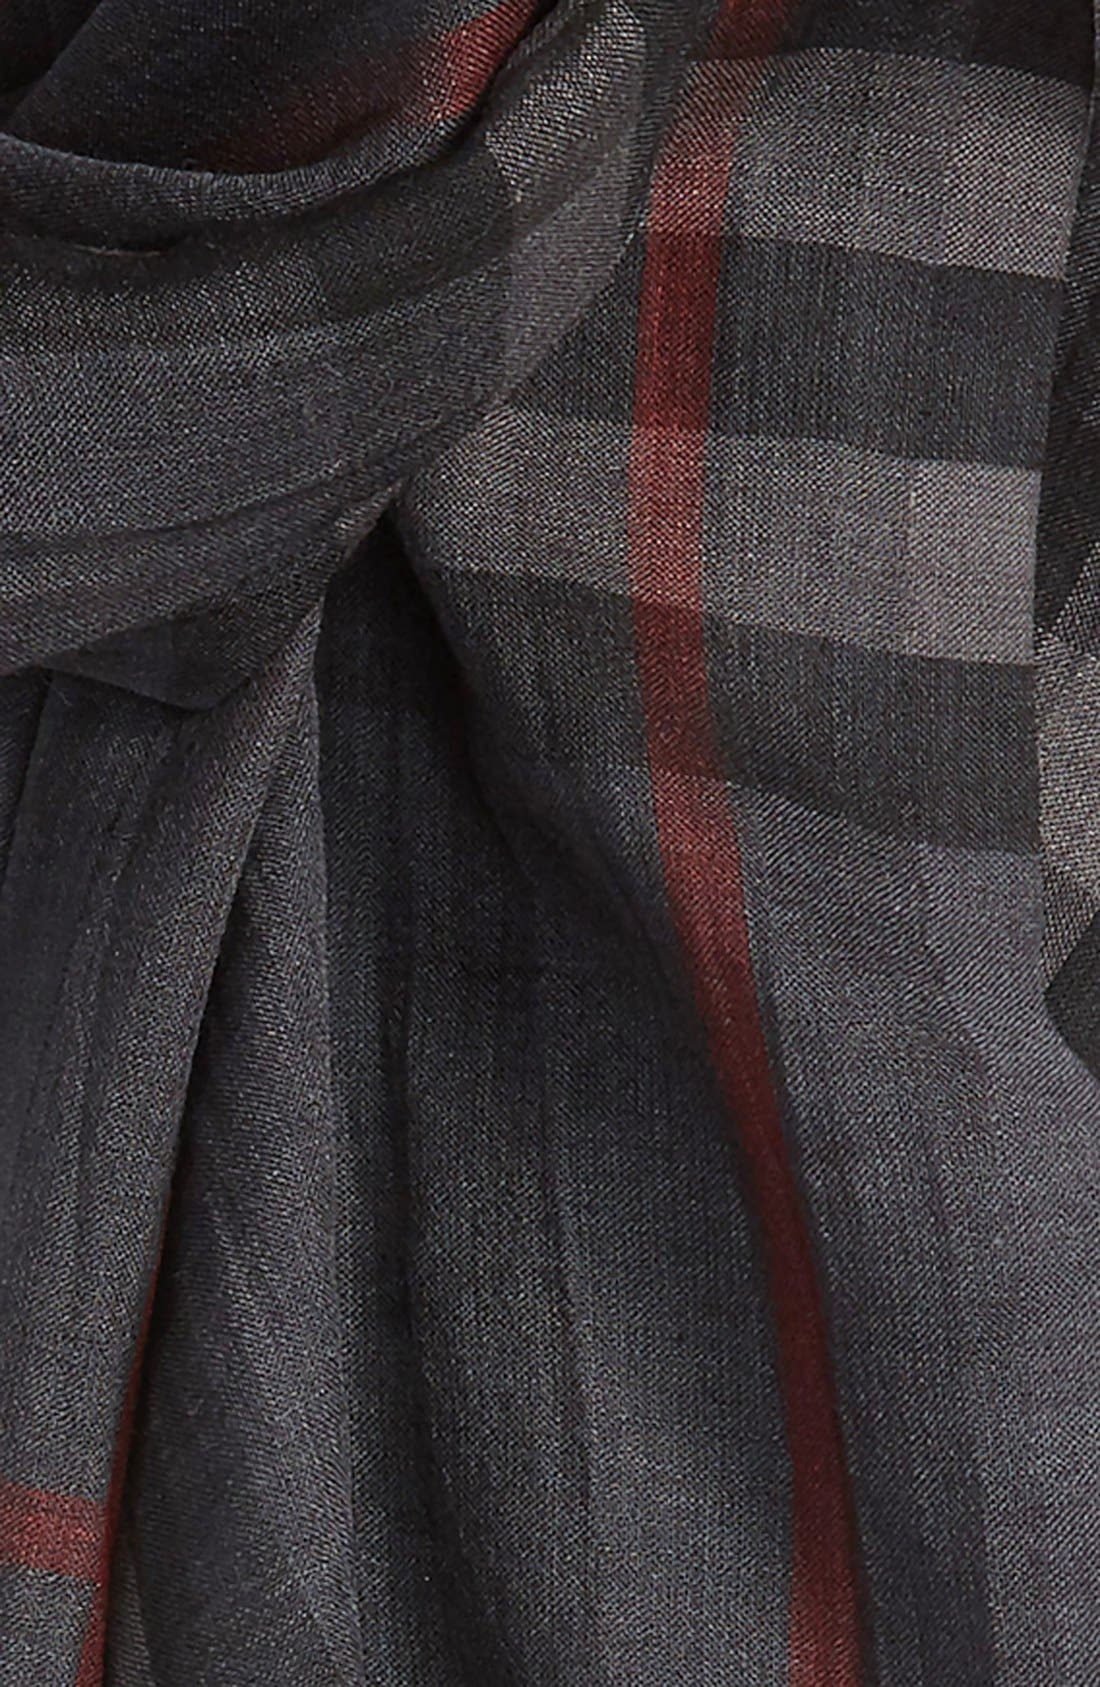 Giant Check Print Wool & Silk Scarf,                             Alternate thumbnail 157, color,